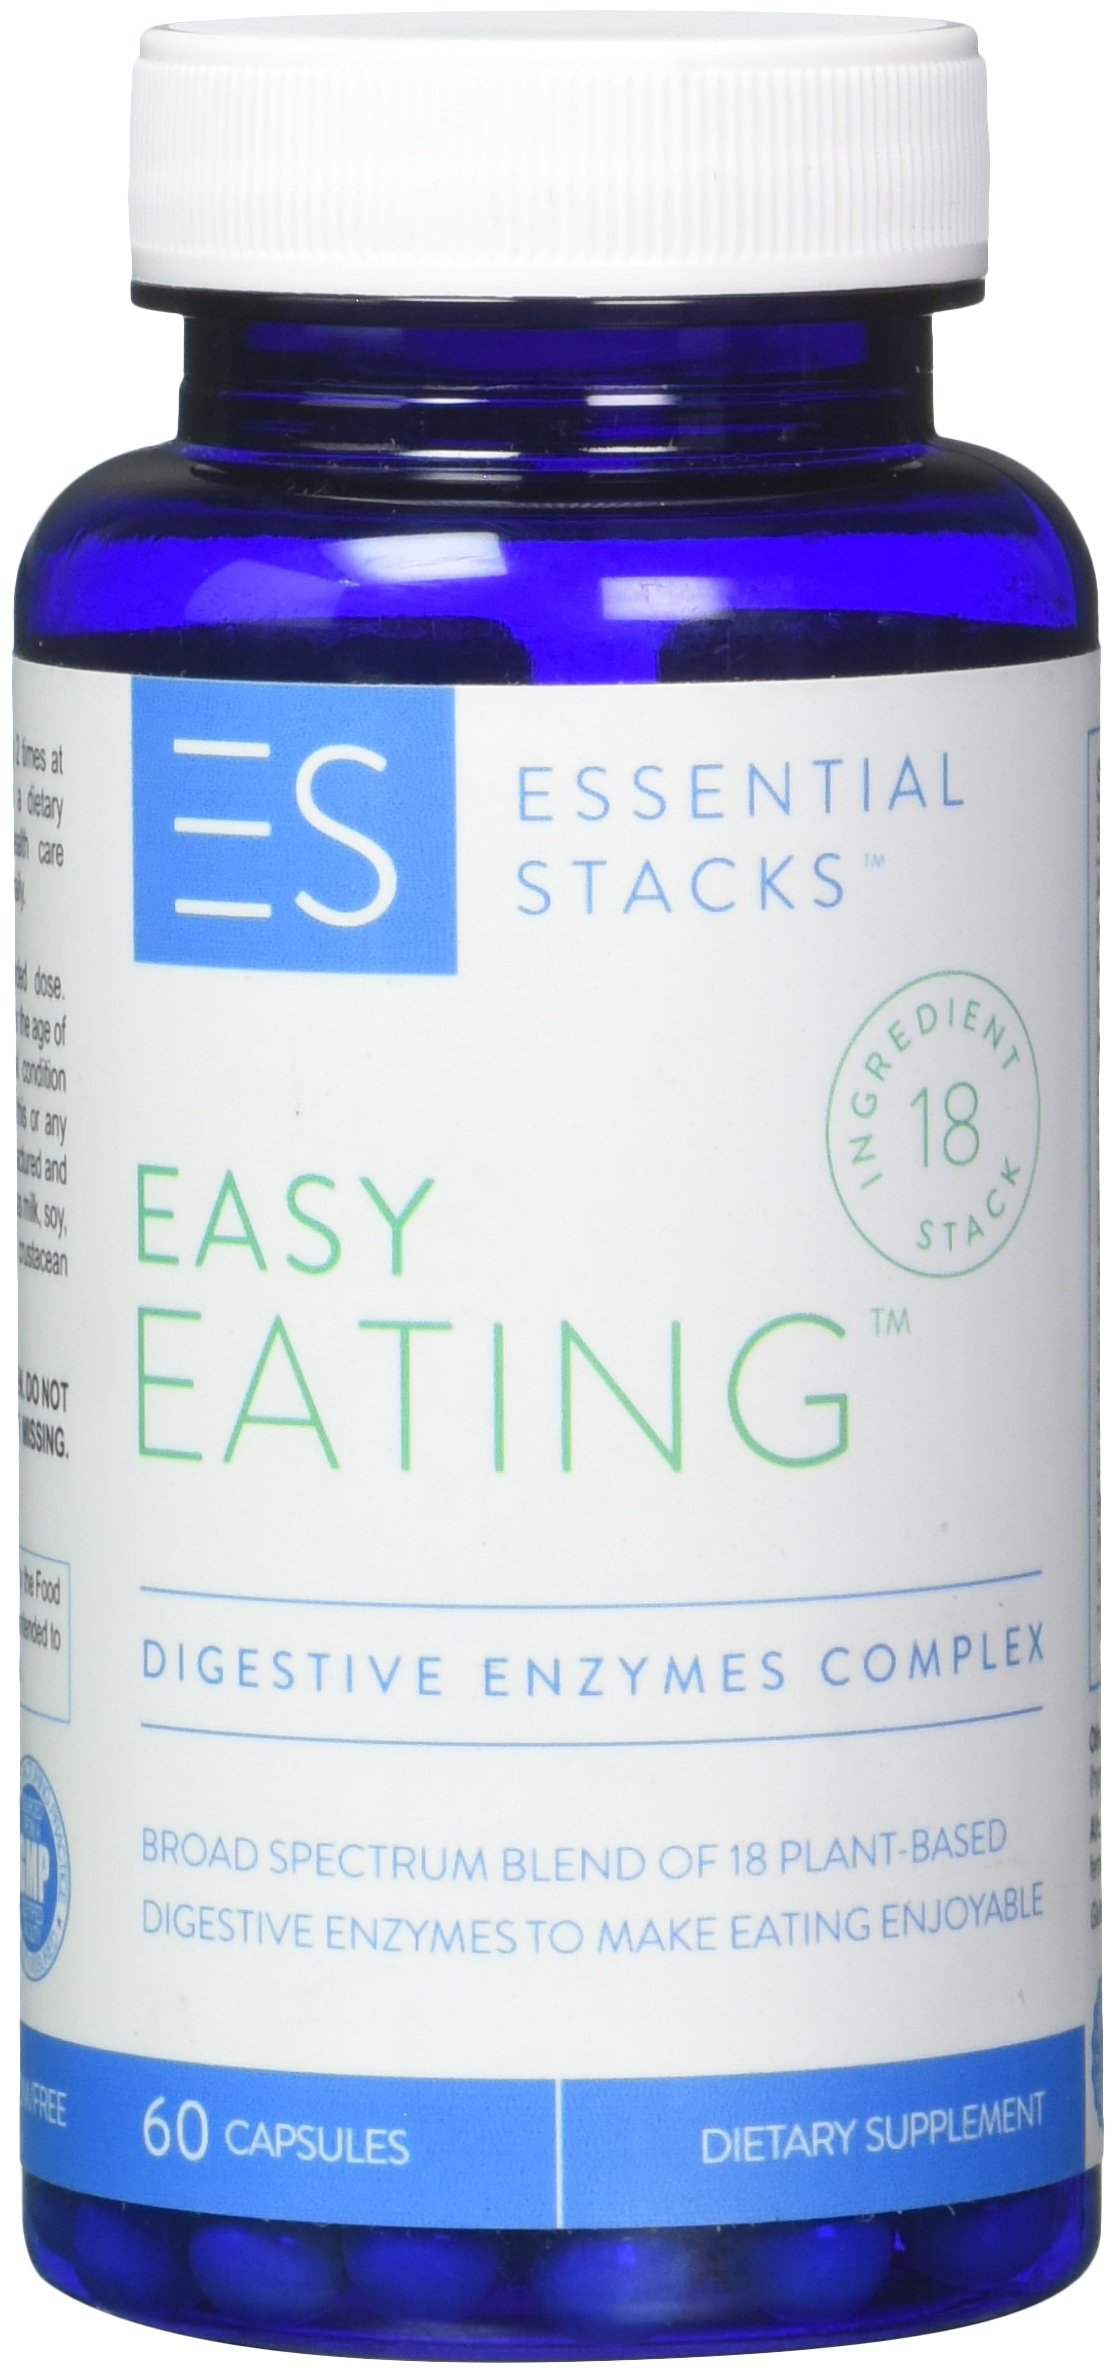 18 Digestive Enzymes In 1 - Gluten Free, Plant Based & Broad Spectrum - Smartly Formulated So You Can Digest ALL Food Groups.